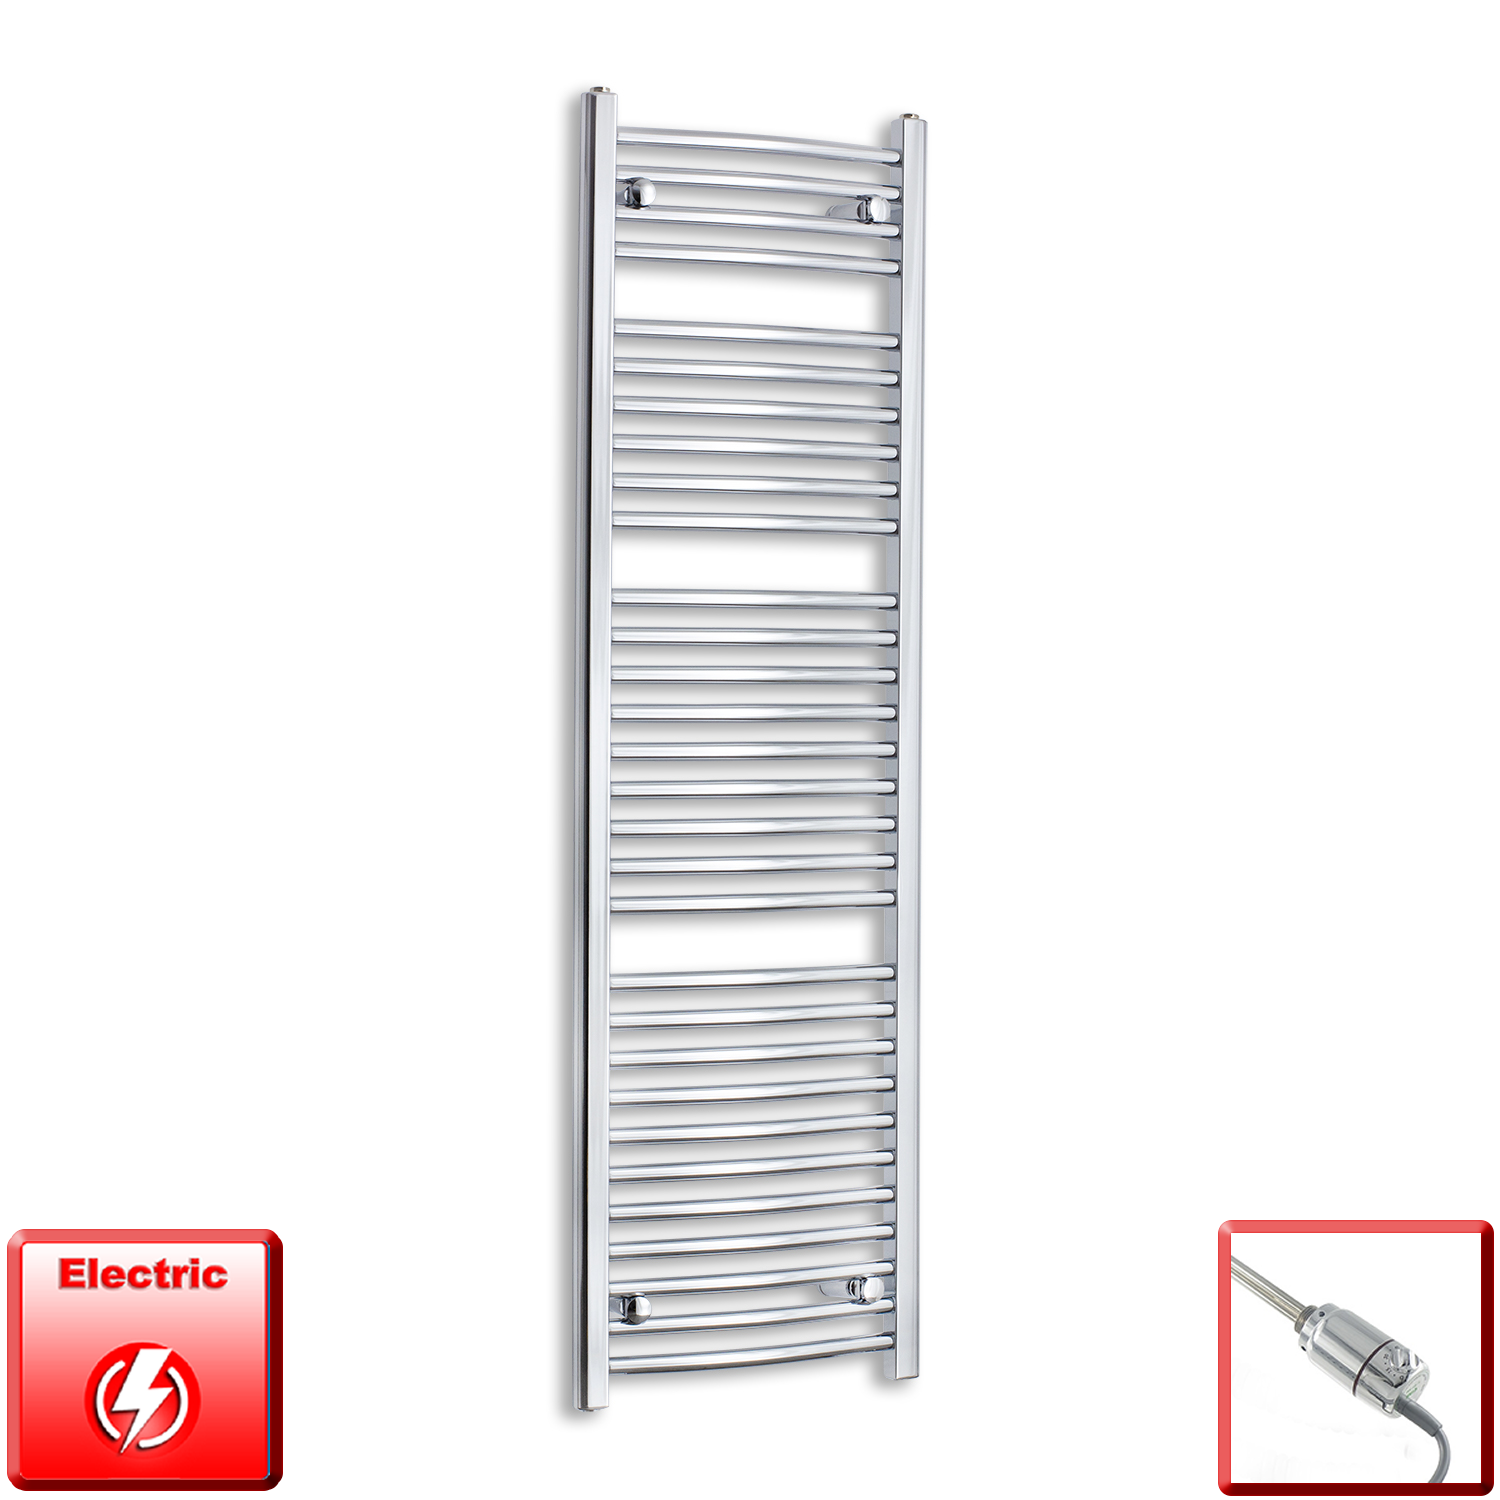 450mm Wide 1500mm High Pre-Filled Chrome Electric Towel Rail Radiator With Thermostatic GT Element